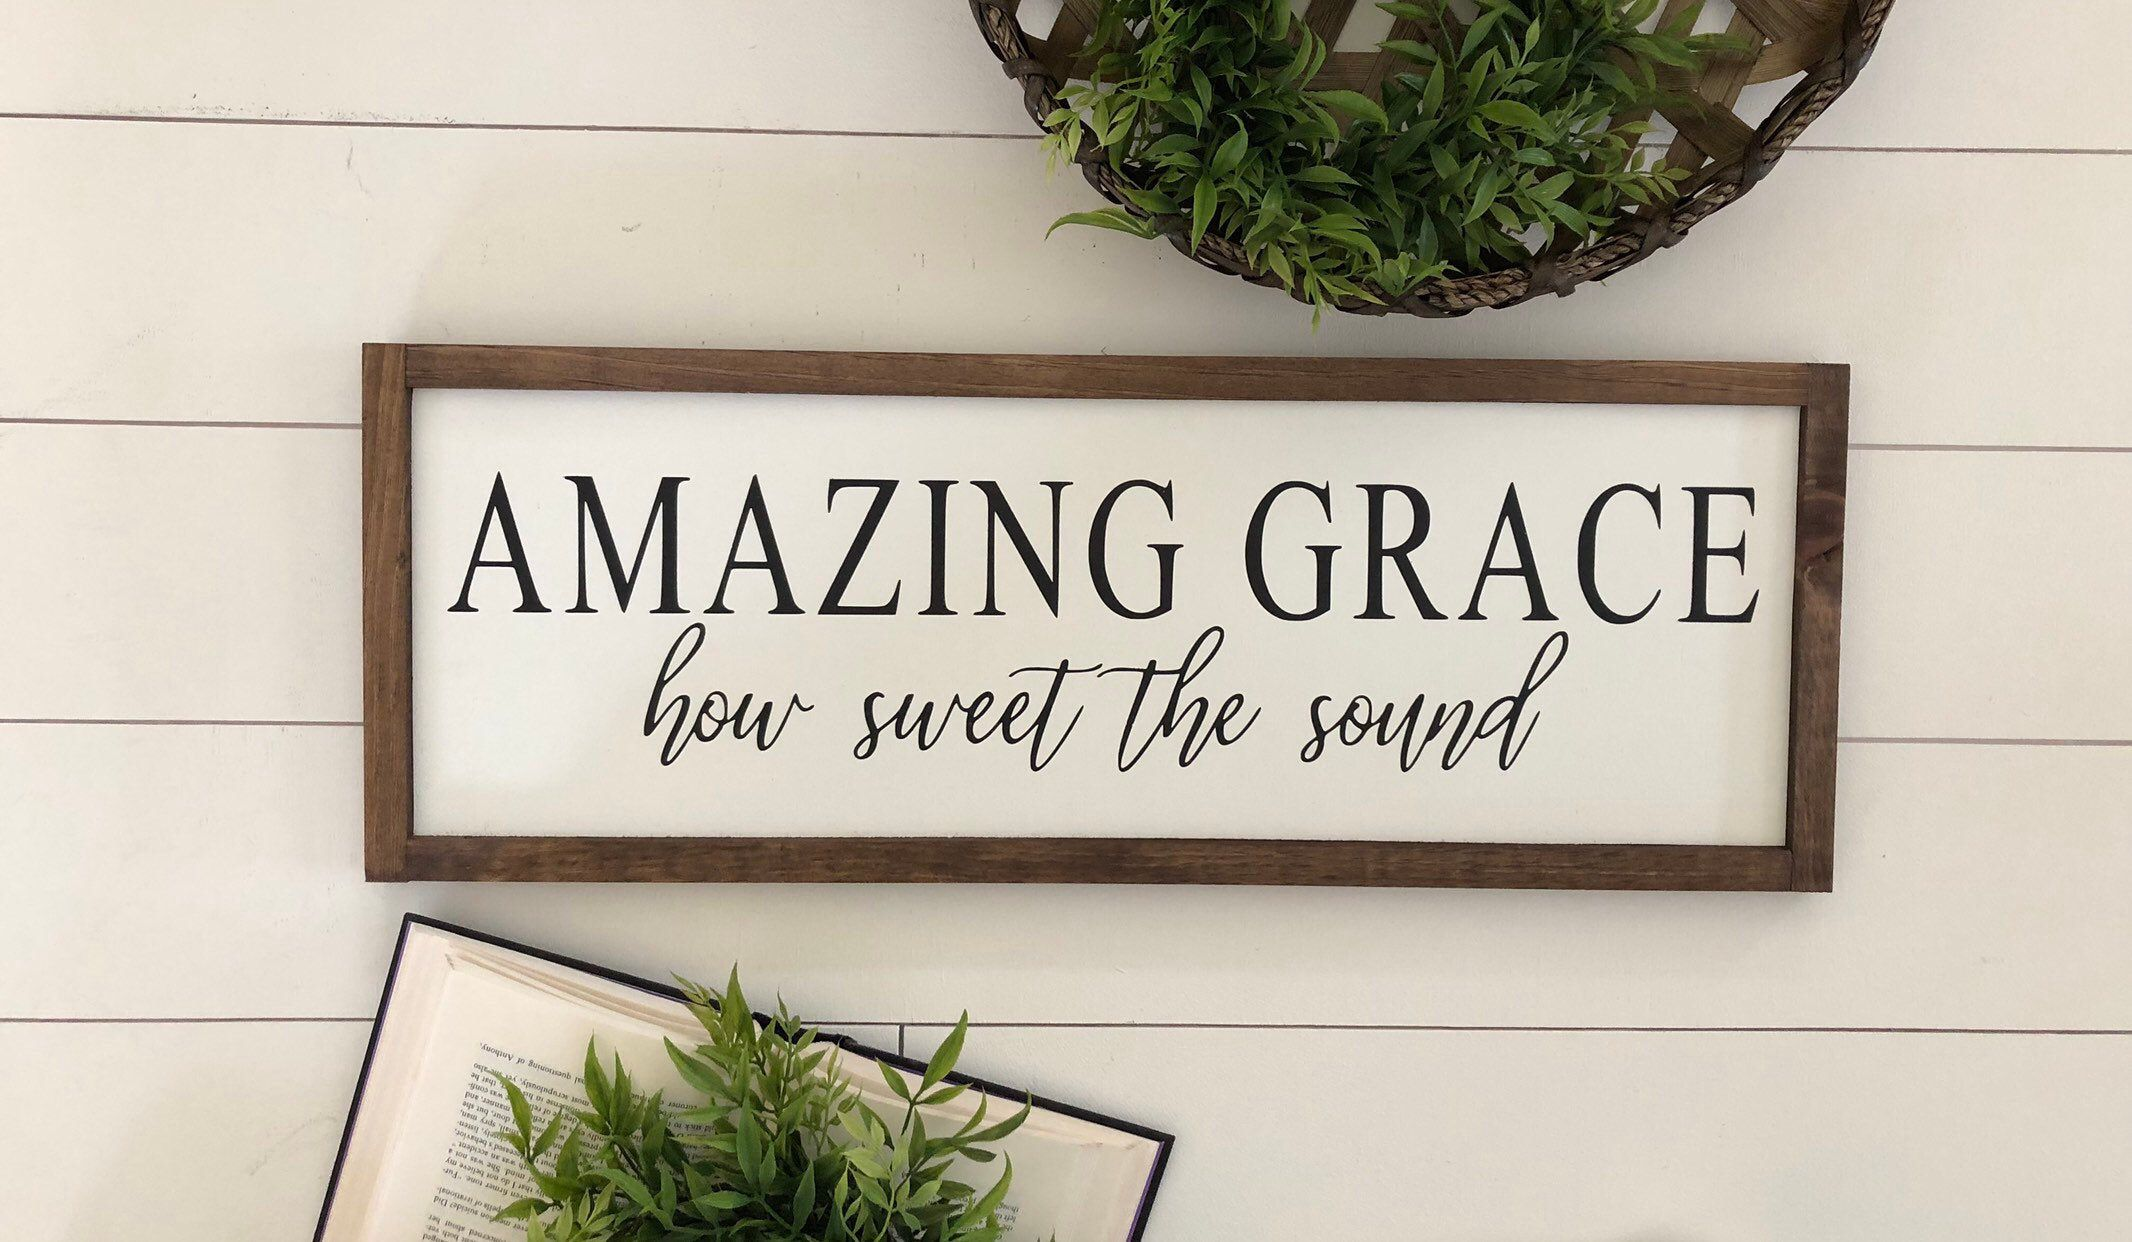 Excited to share this item from my #etsy shop: Amazing grace how sweet the sound wooden sign / home decor / farmhouse sign / housewarming gift / fixerupper style sign /